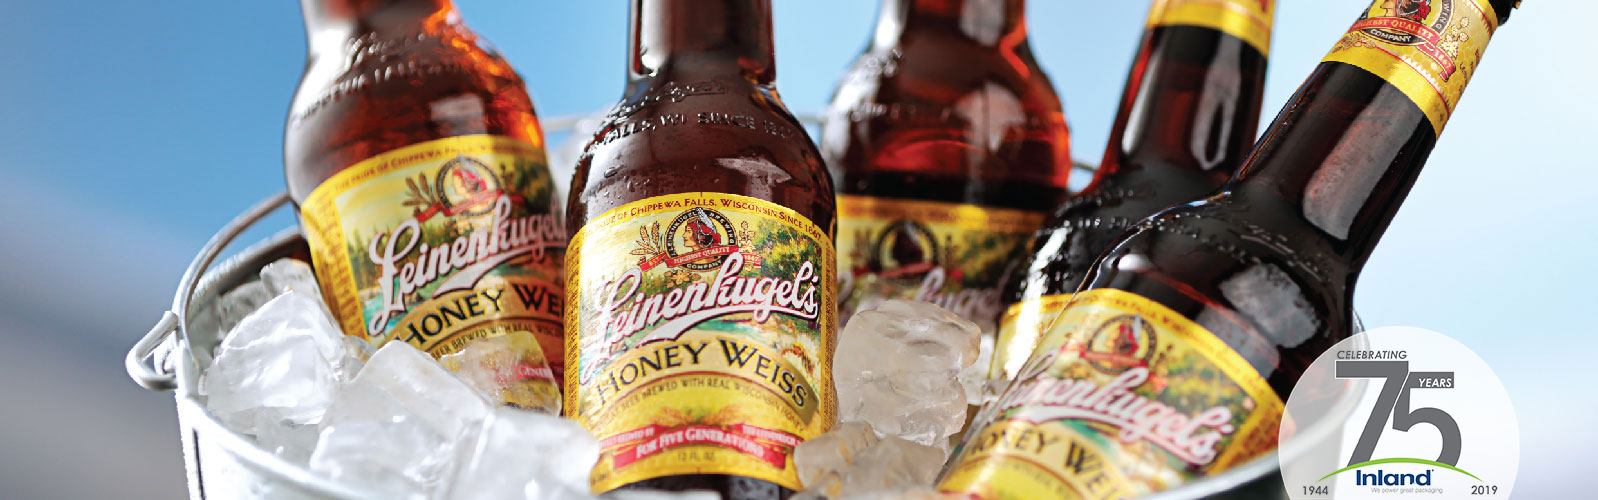 Leinenkugels Honey Weiss label